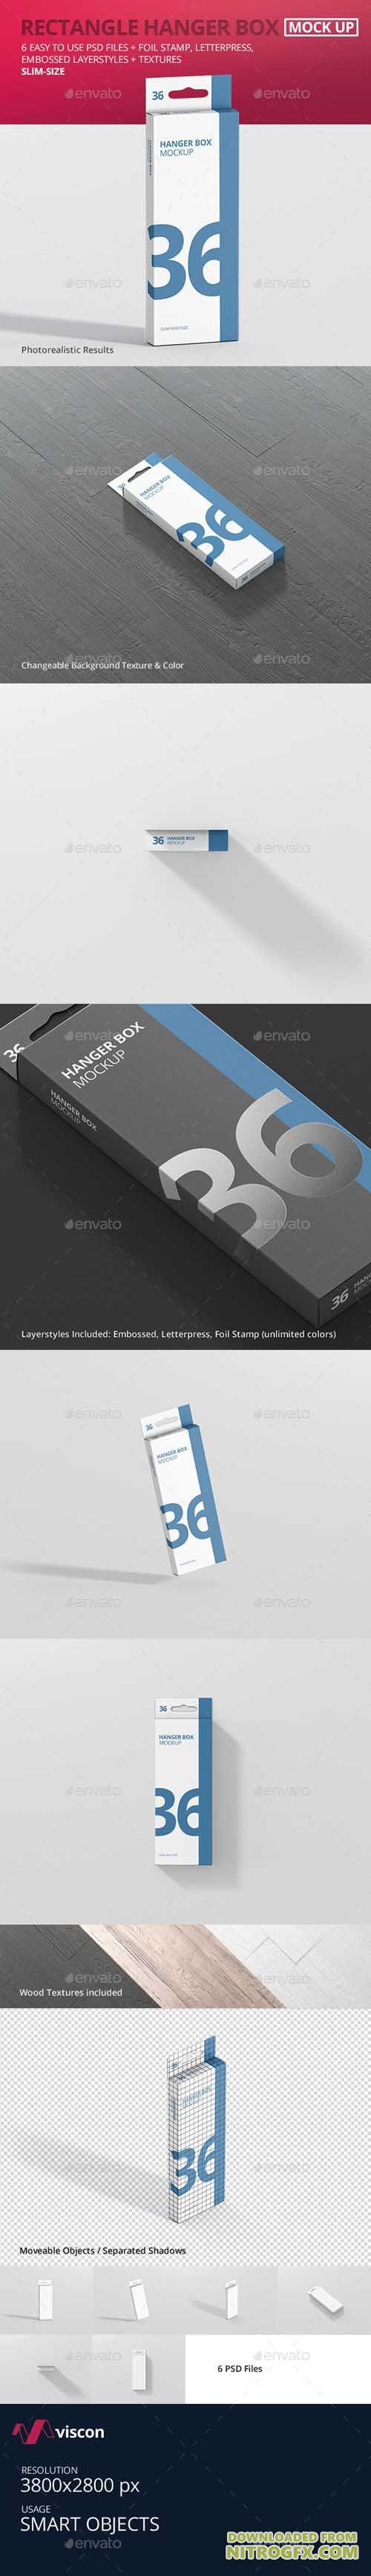 Box Mockup - Rectangle Slim High with Hanger 21019663